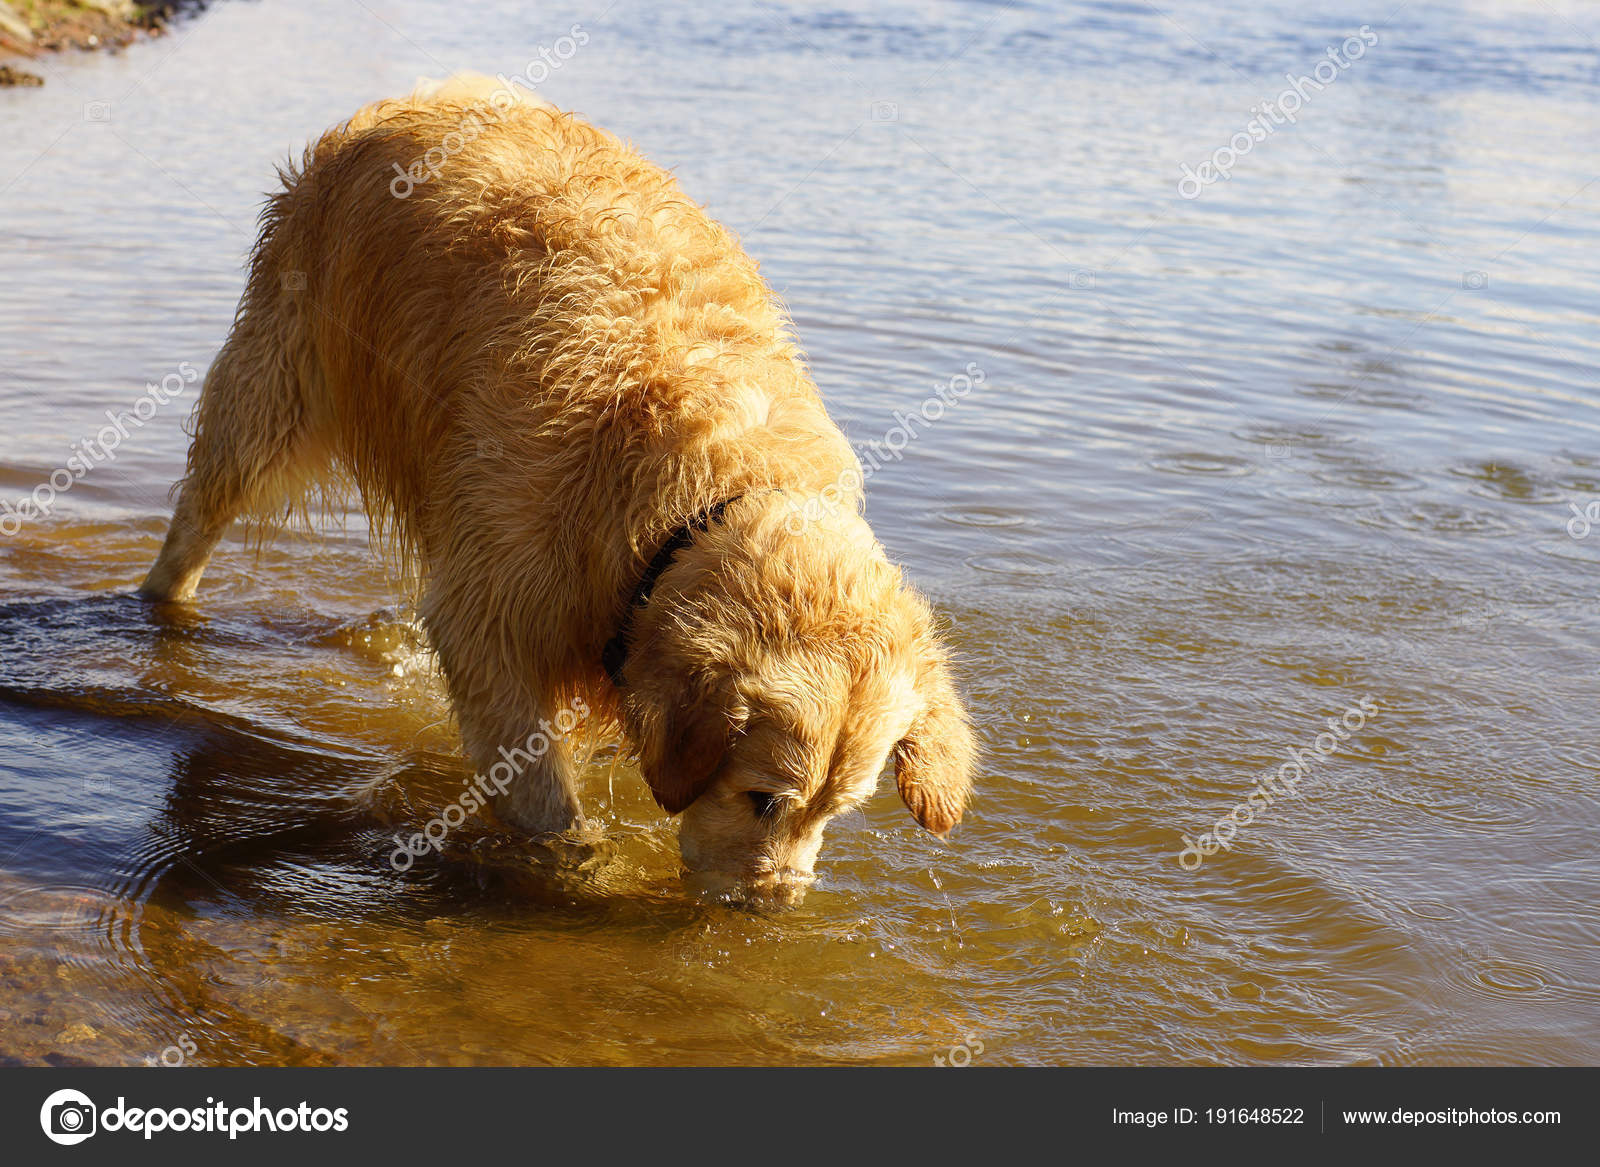 Dog Breed Golden Retriever Stuffed His Nose Into The Lake Water